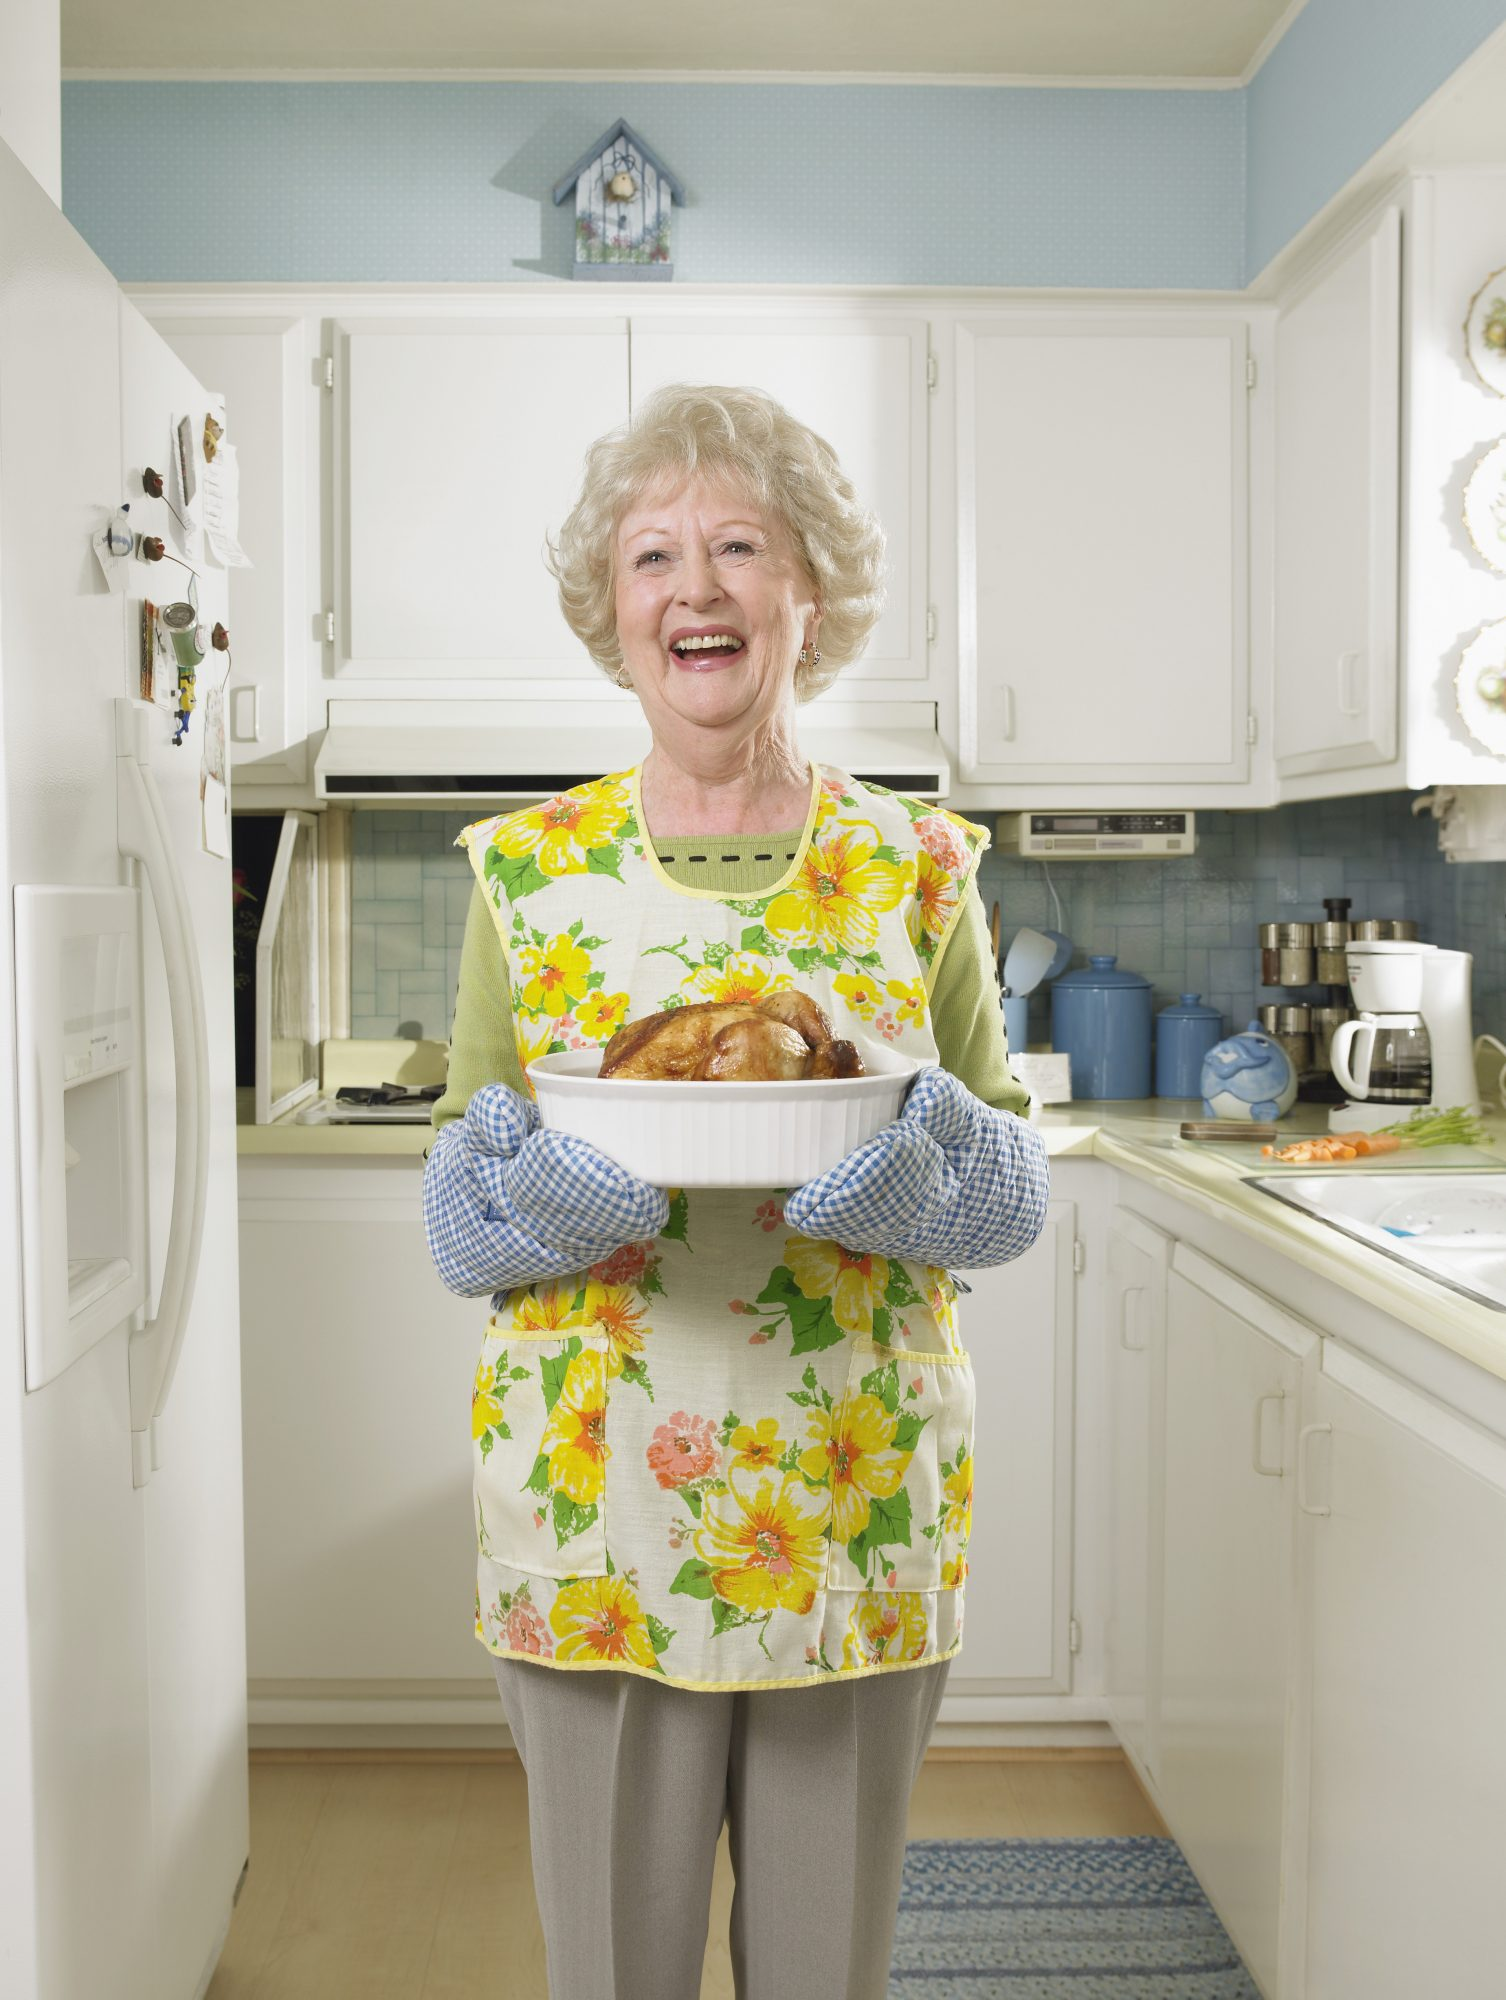 grandmother in apron baking